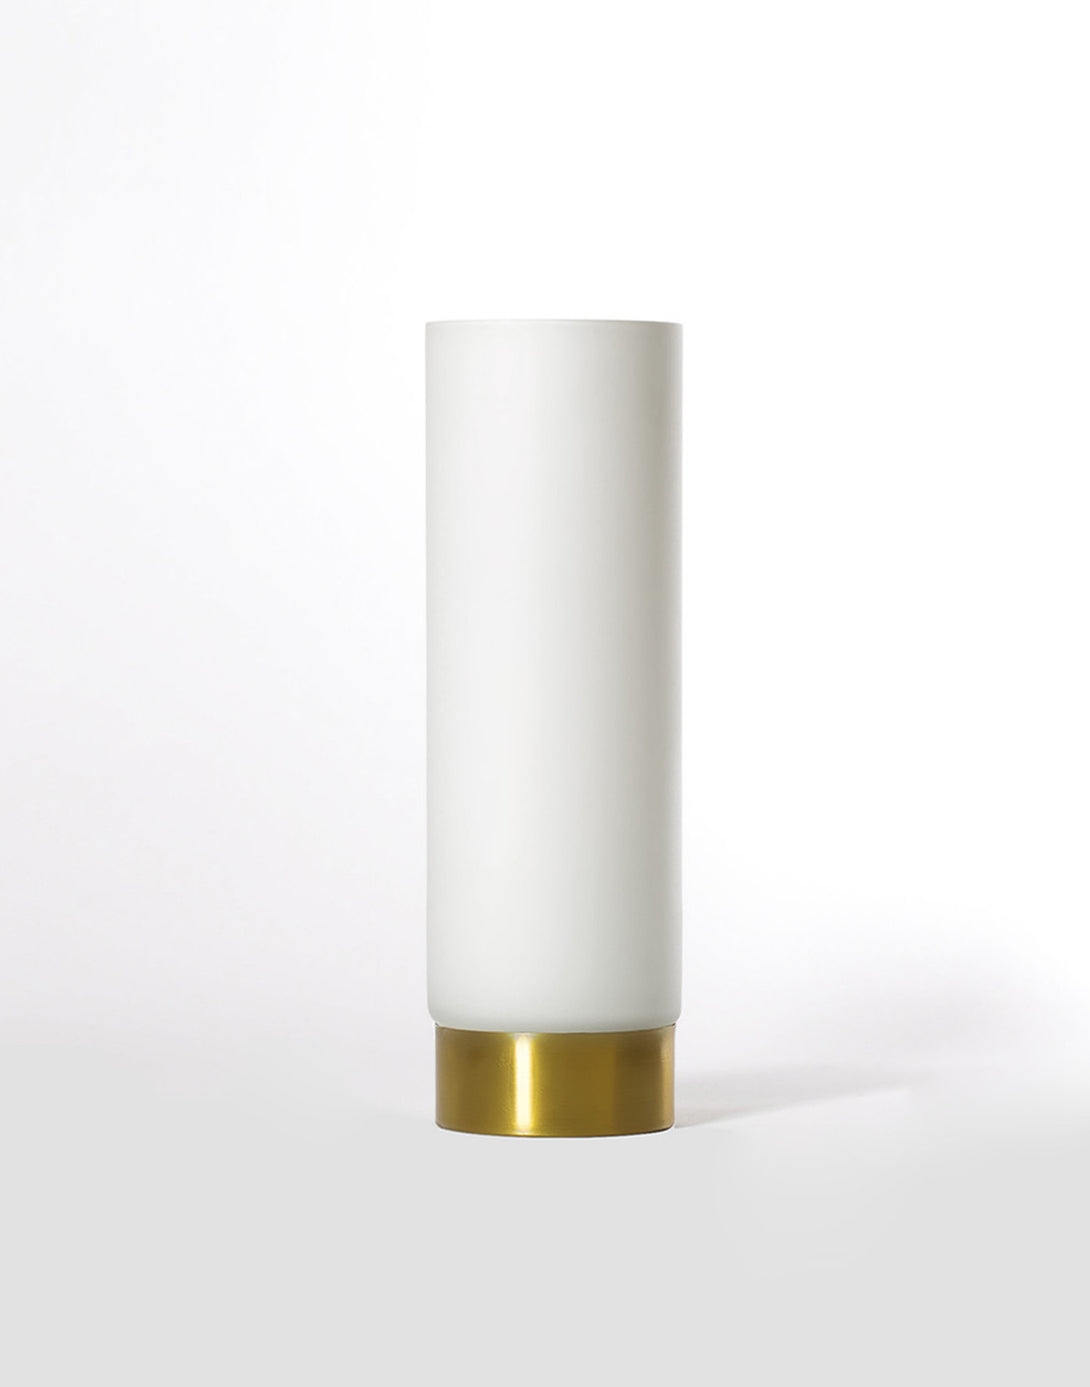 white, frosted glass vase